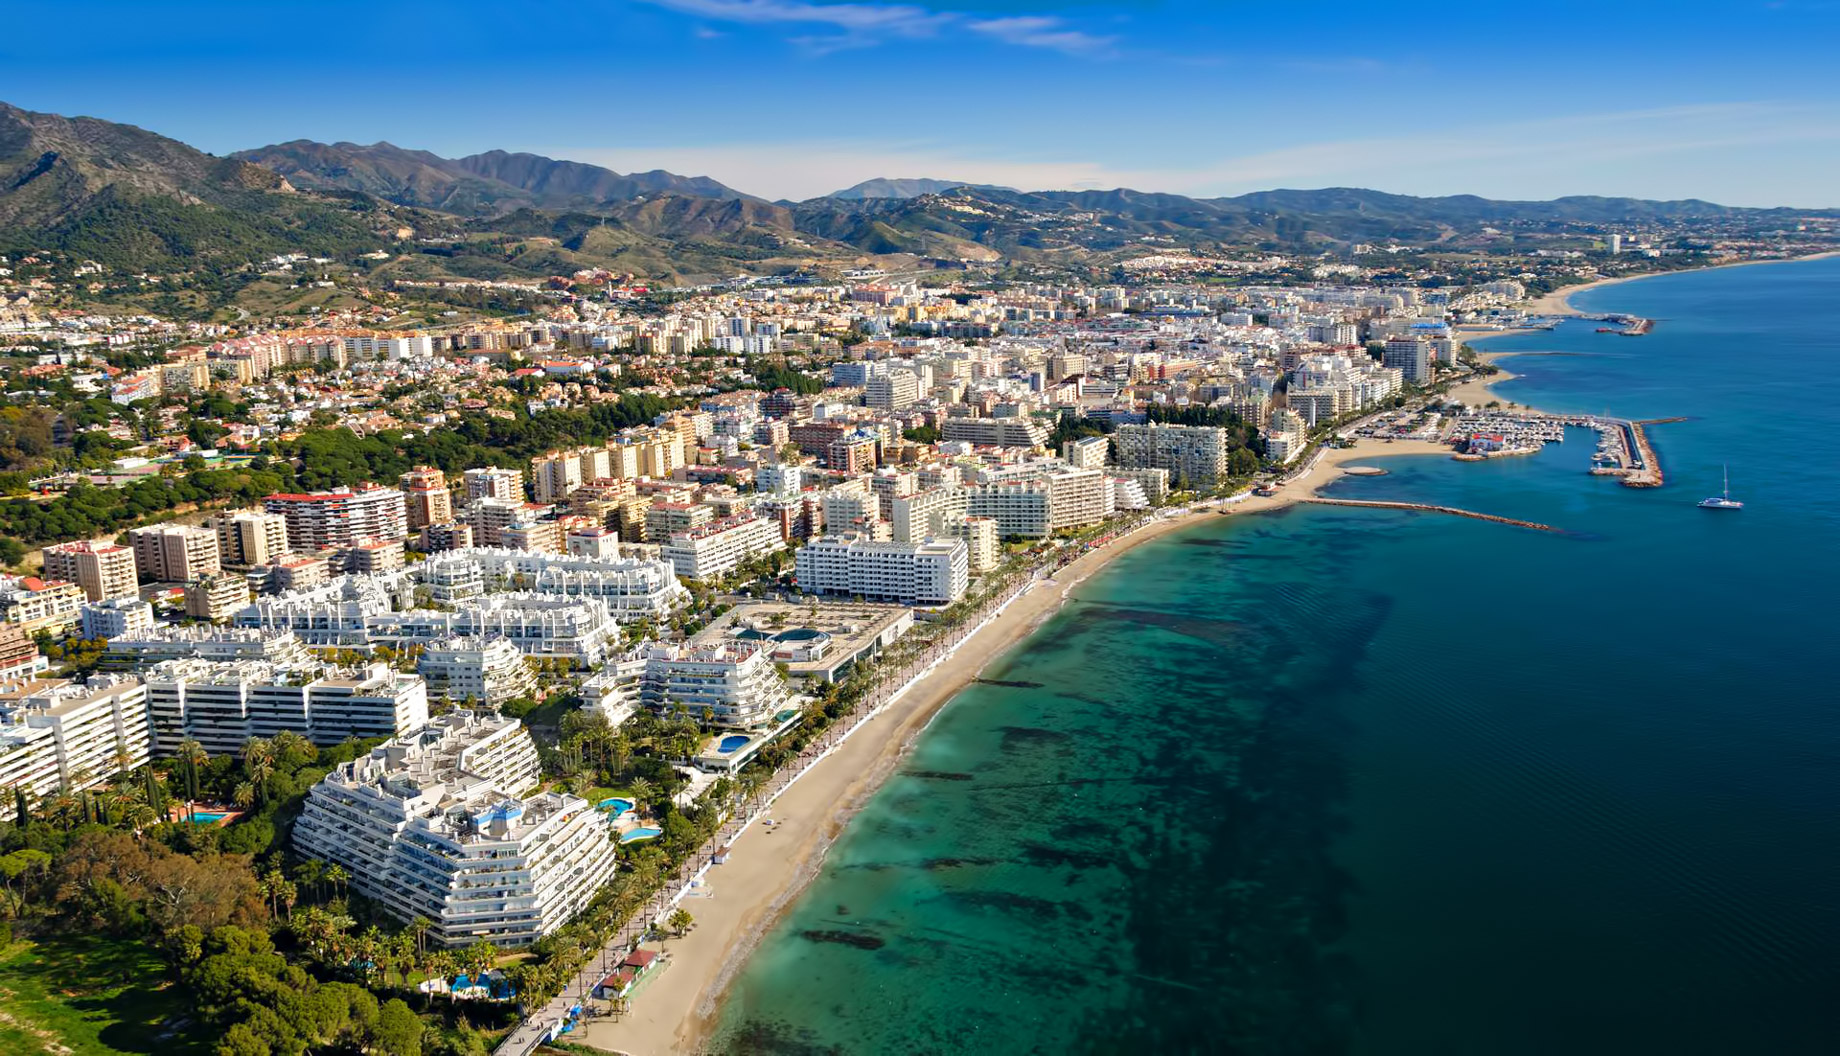 Marbella - Spain - The Most Exclusive European Resorts Locations to Buy a Holiday House